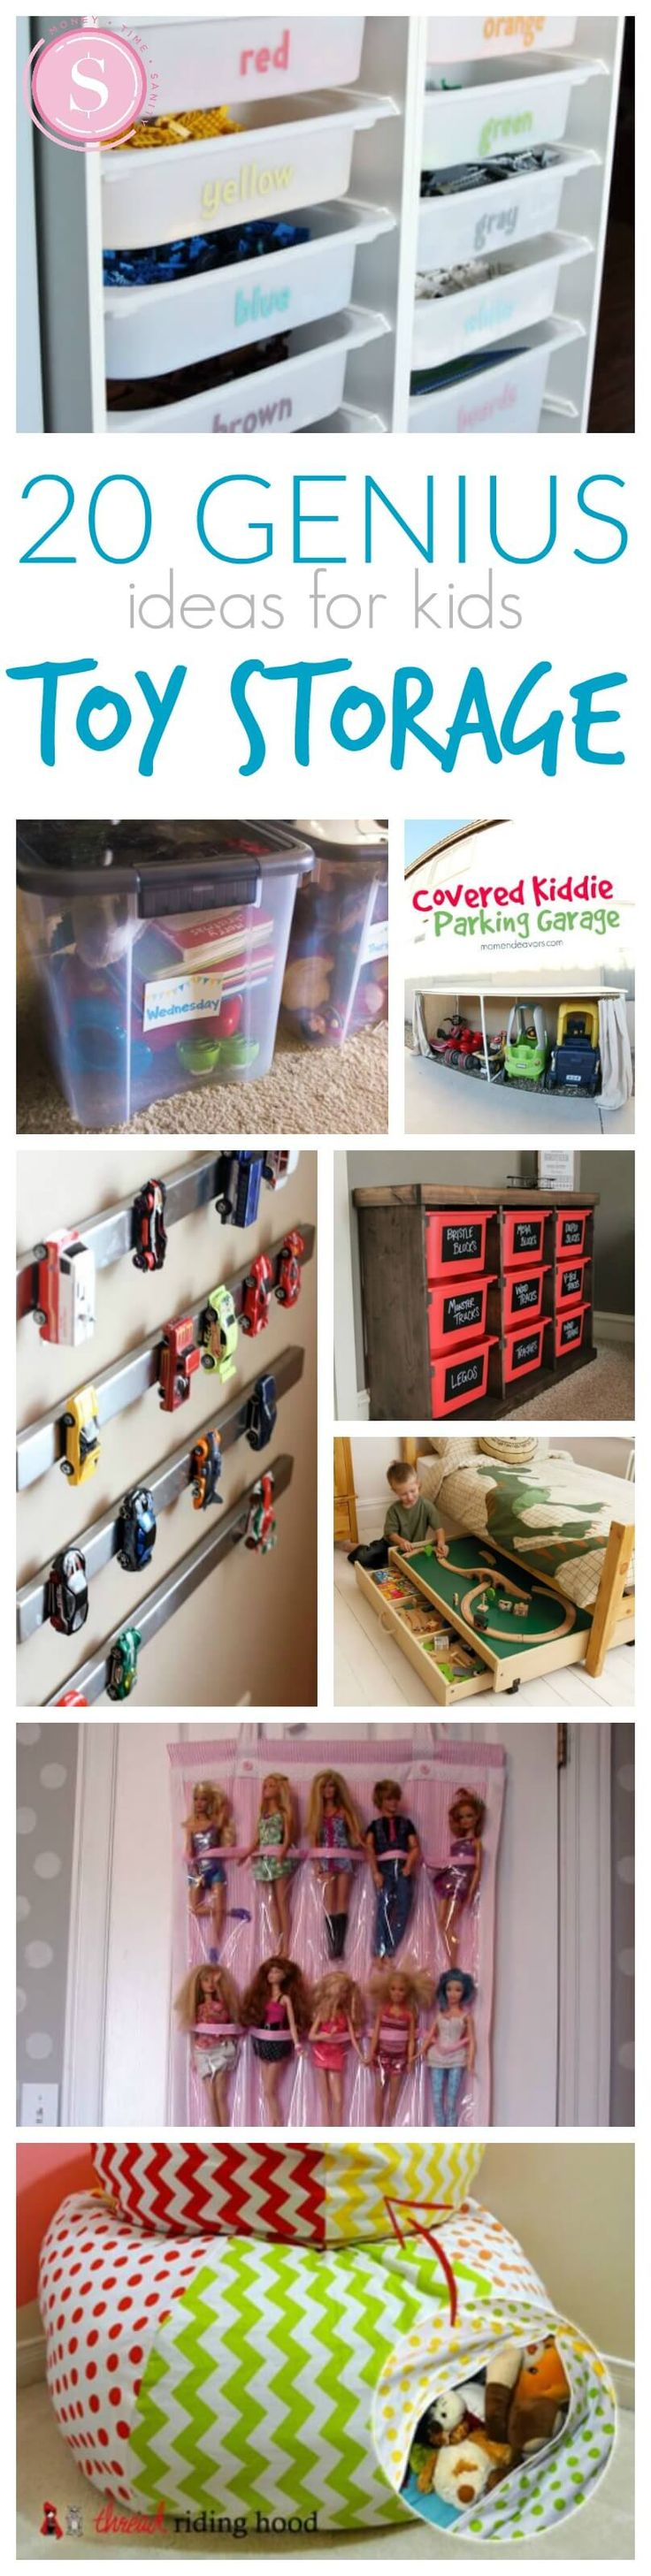 http://credito.digimkts.com Nuestro objetivo es acabar con el mal crédito de una persona a la vez. Llame hoy para obtener ayuda. (844) 897-3018 20 Genius Ideas for Organizing Your Kid's Rooms! Great tips and tricks for Spring Cleaning!